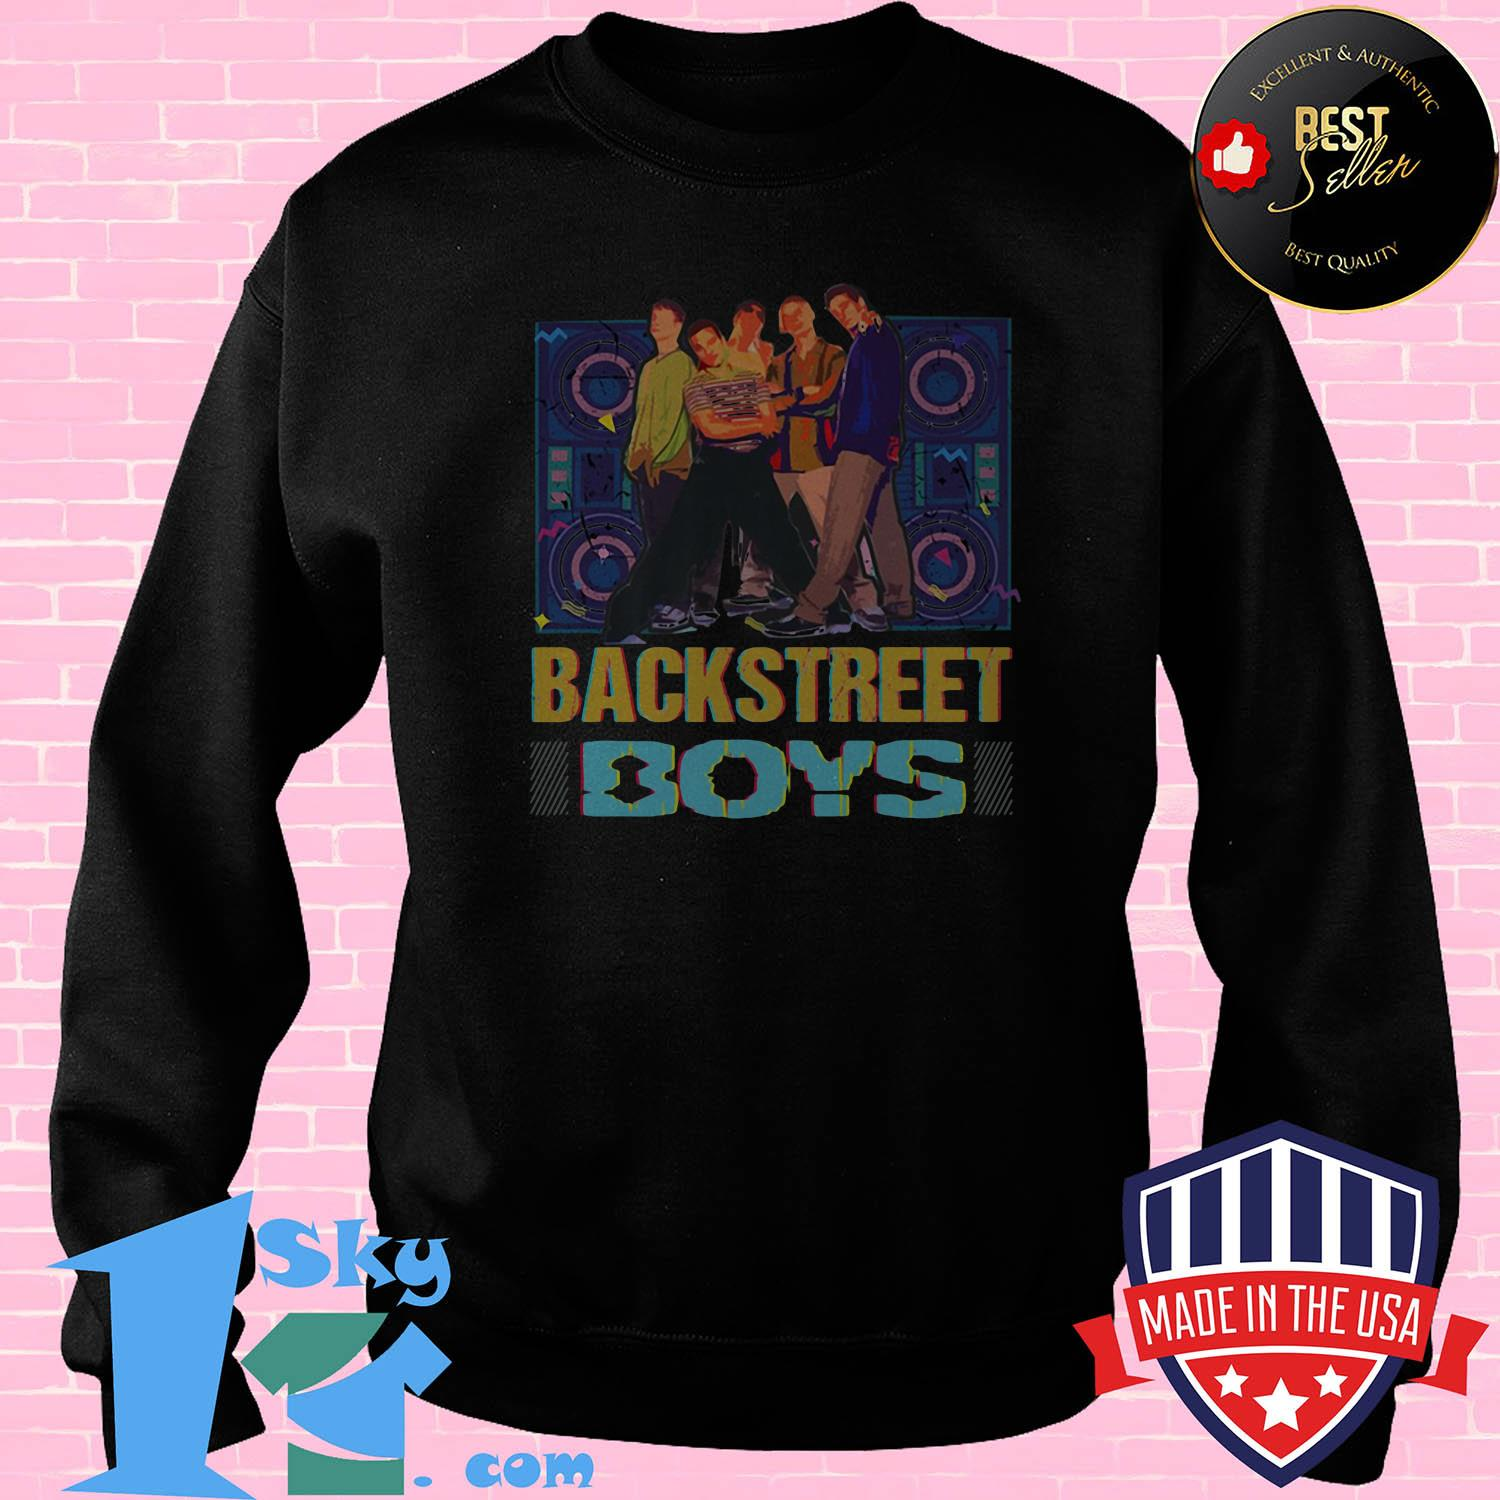 90s backstreet boys vintage back boys music band sweatshirt - 90s Backstreet Boys Vintage Back Boys Music Band shirt